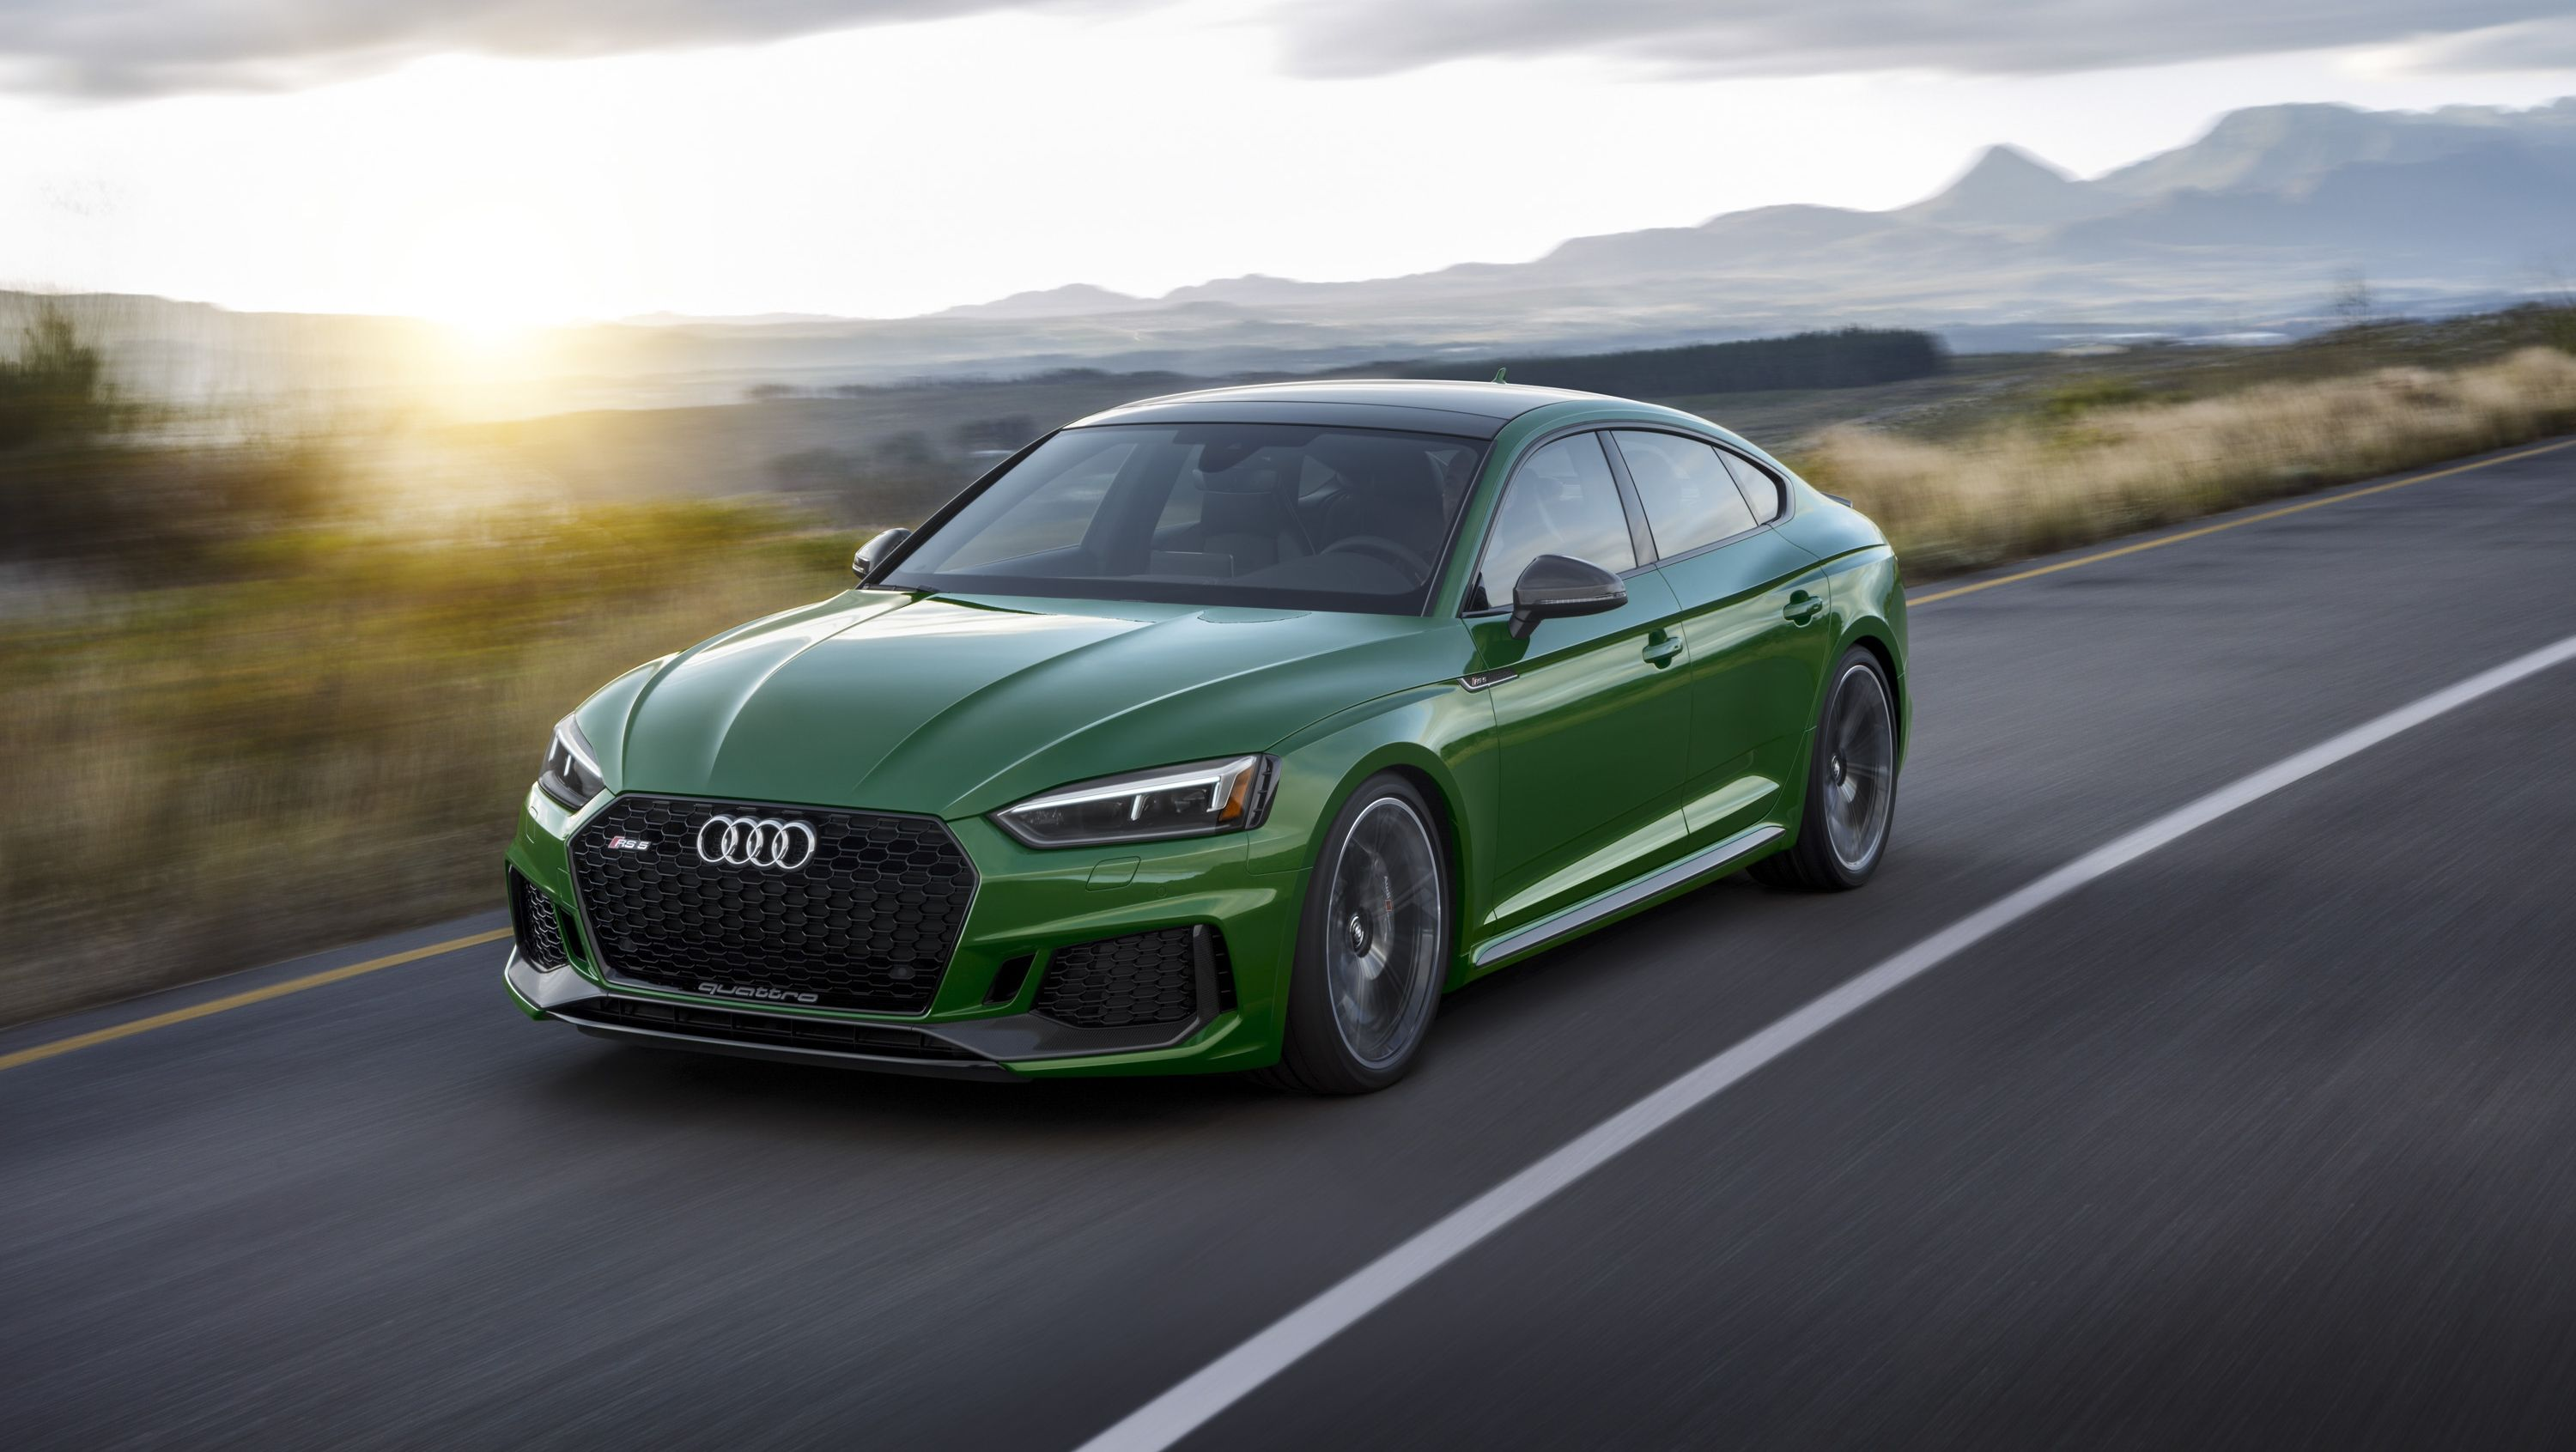 Audi Claims The New Rs5 Can Do 0 To 60 Mph In Four Seconds But What Can It Do Under Ideal Conditions Top Speed Audi Rs5 Sportback Audi Rs5 Audi Rs 5